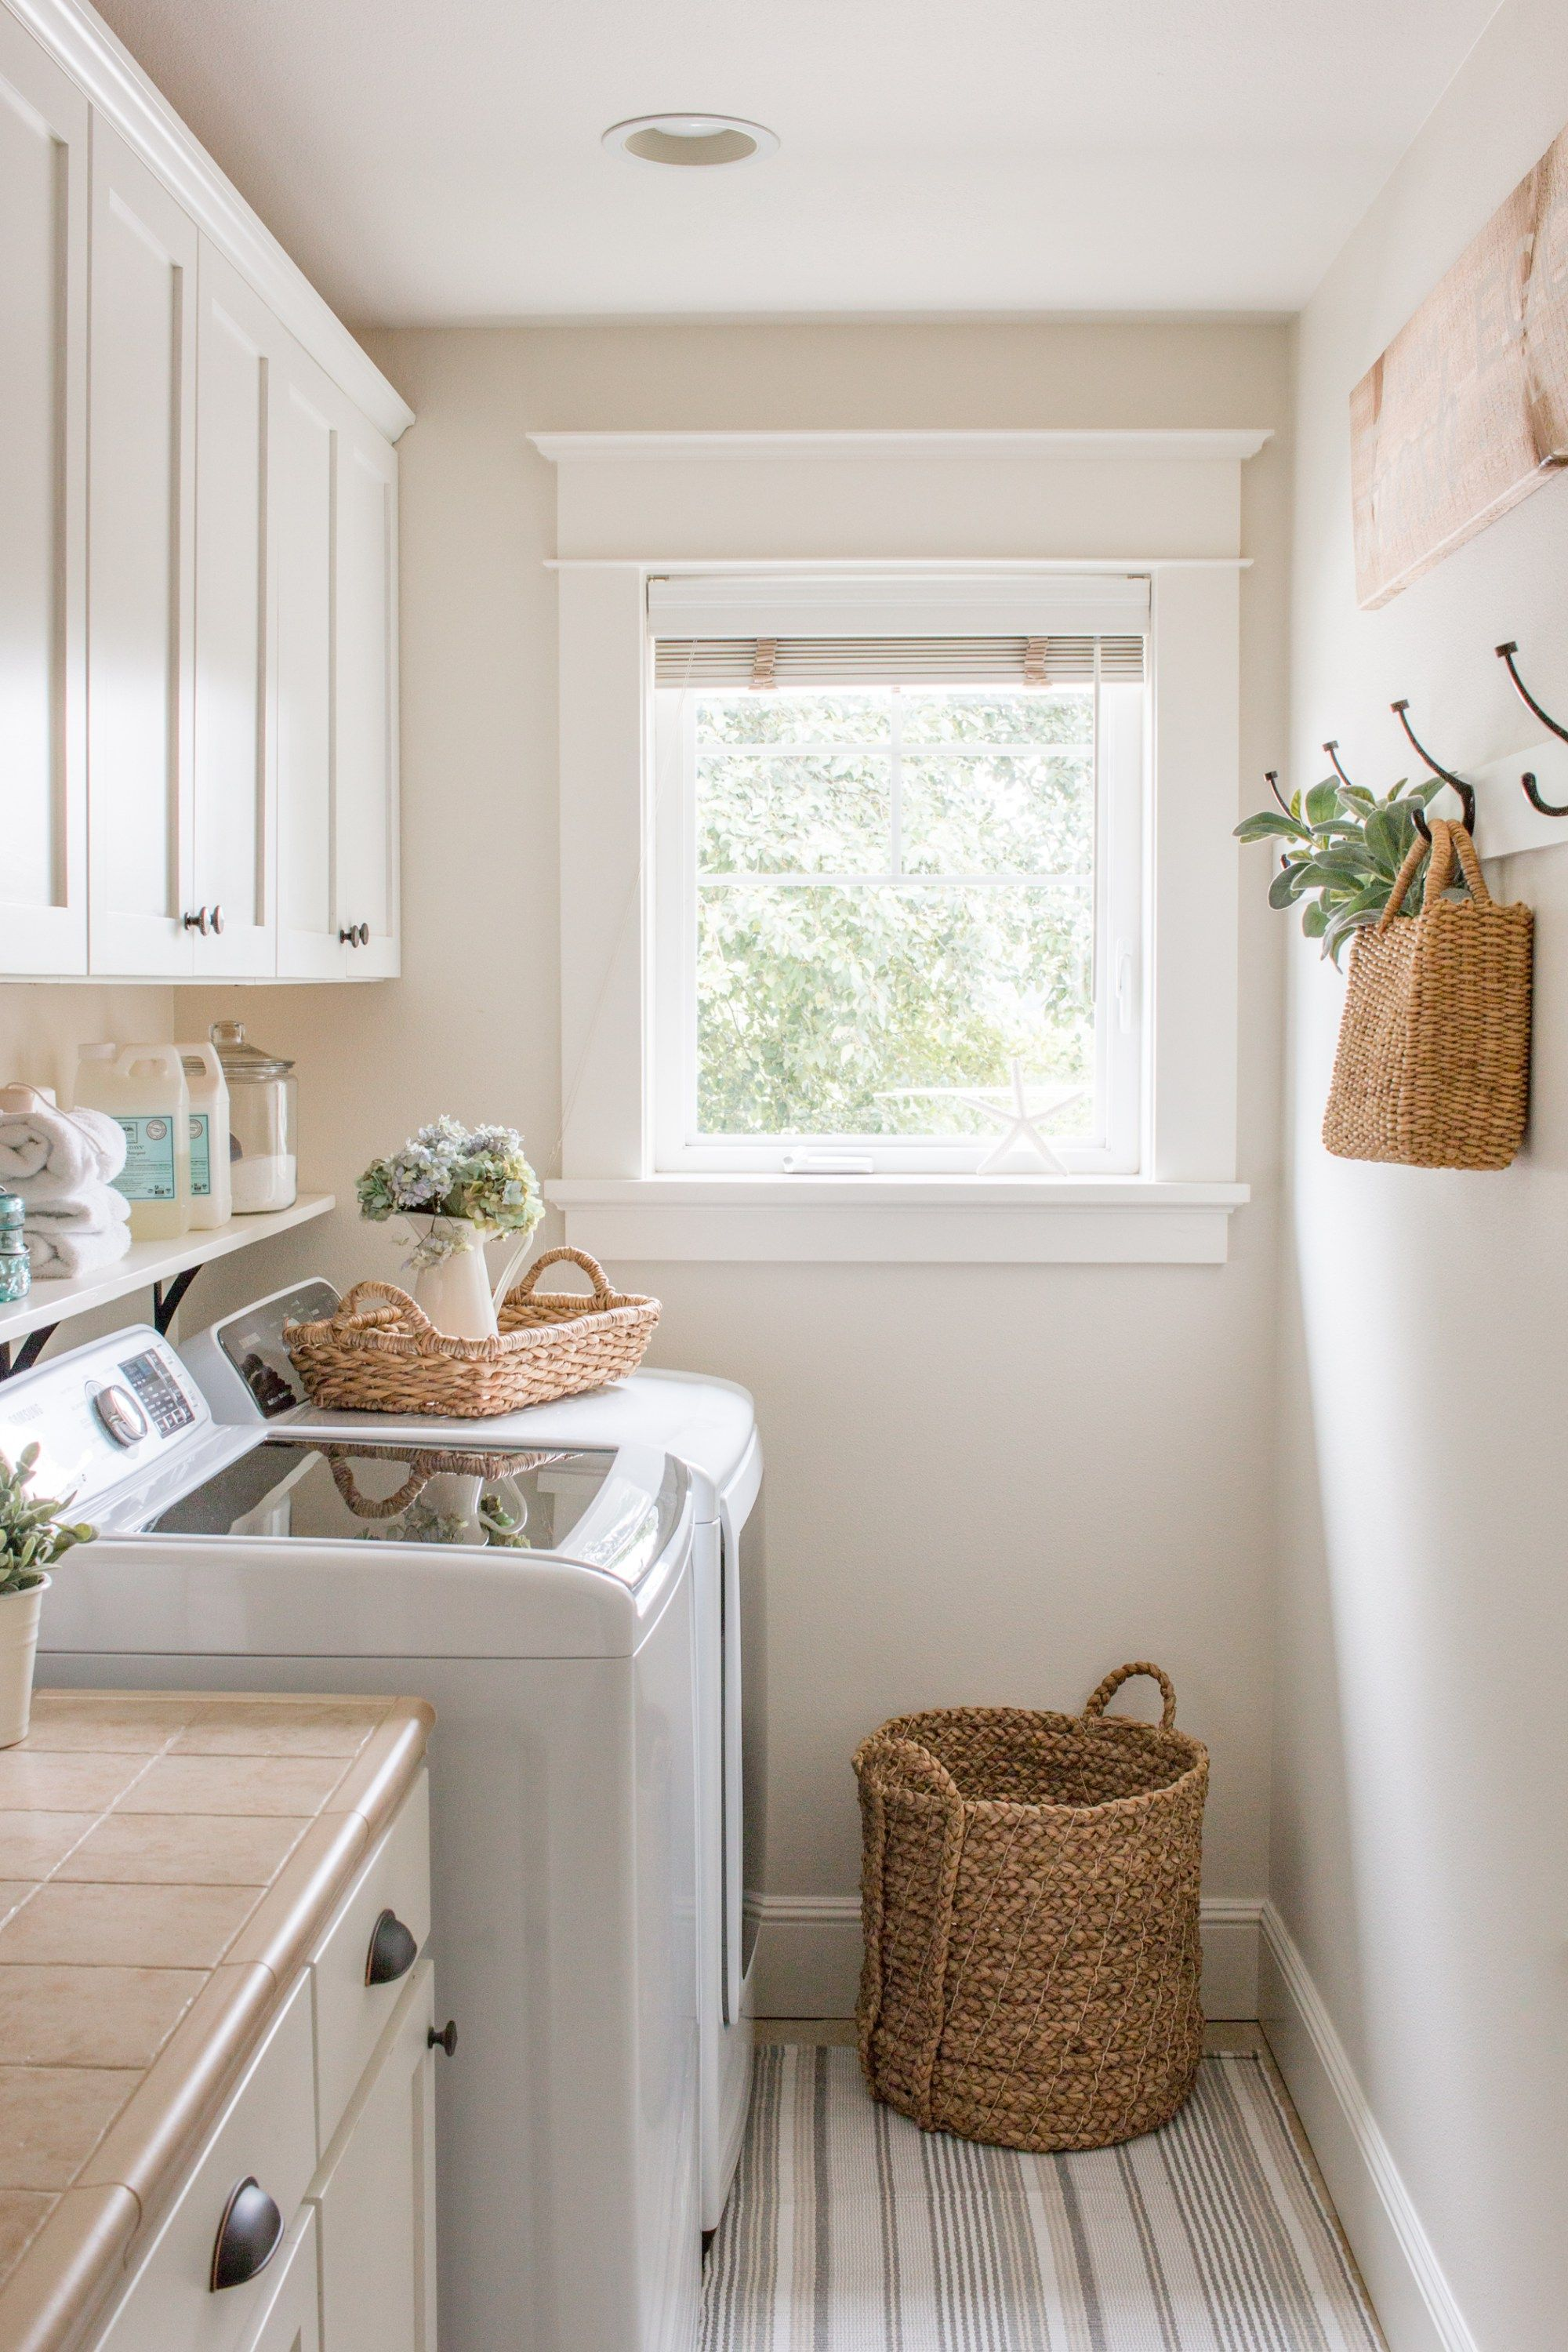 Fluff and Fold Laundry Room Refresh images